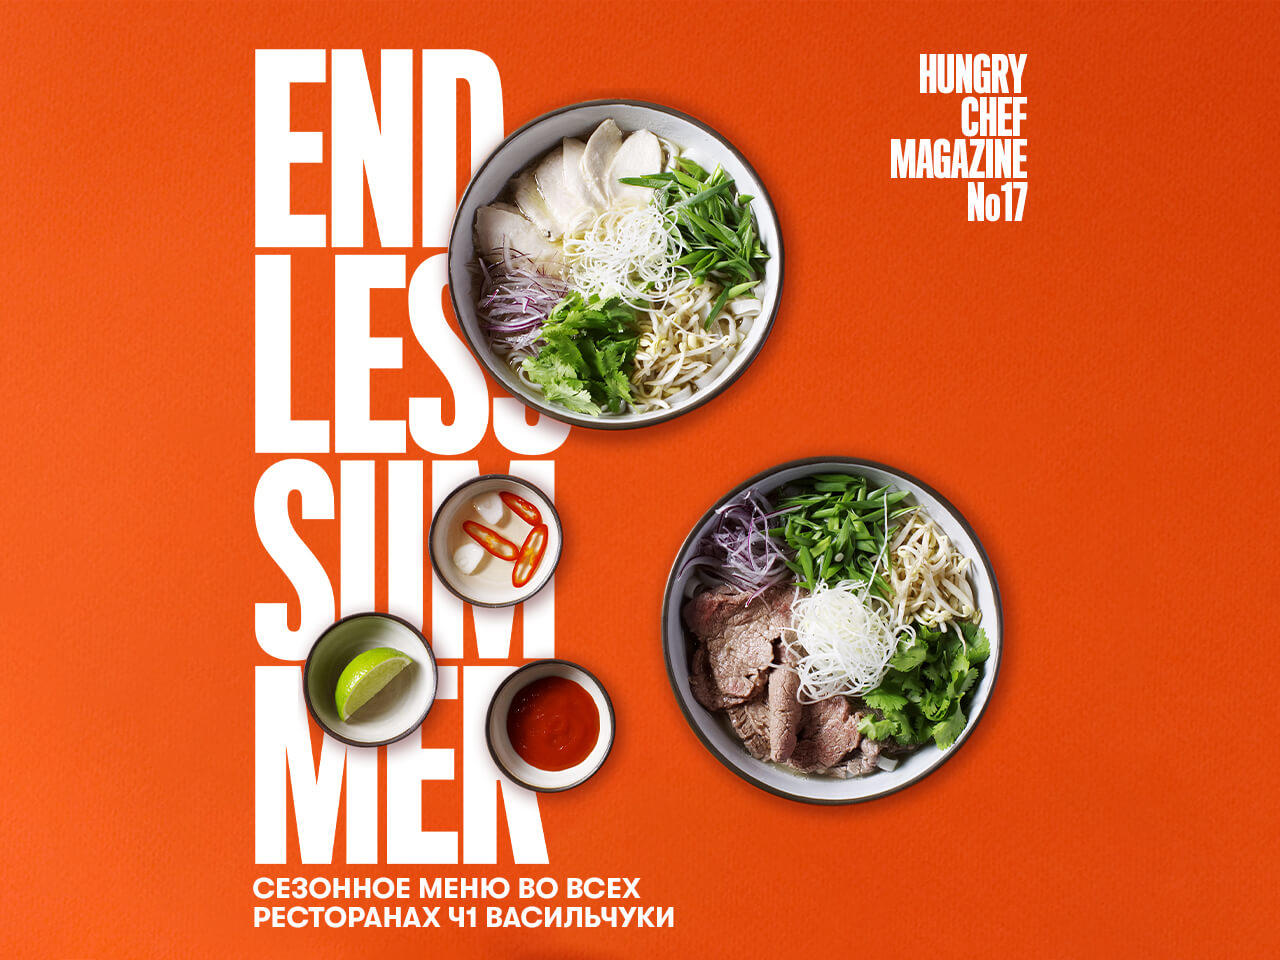 Hungry Chef Magazine №17 - Endless Summer